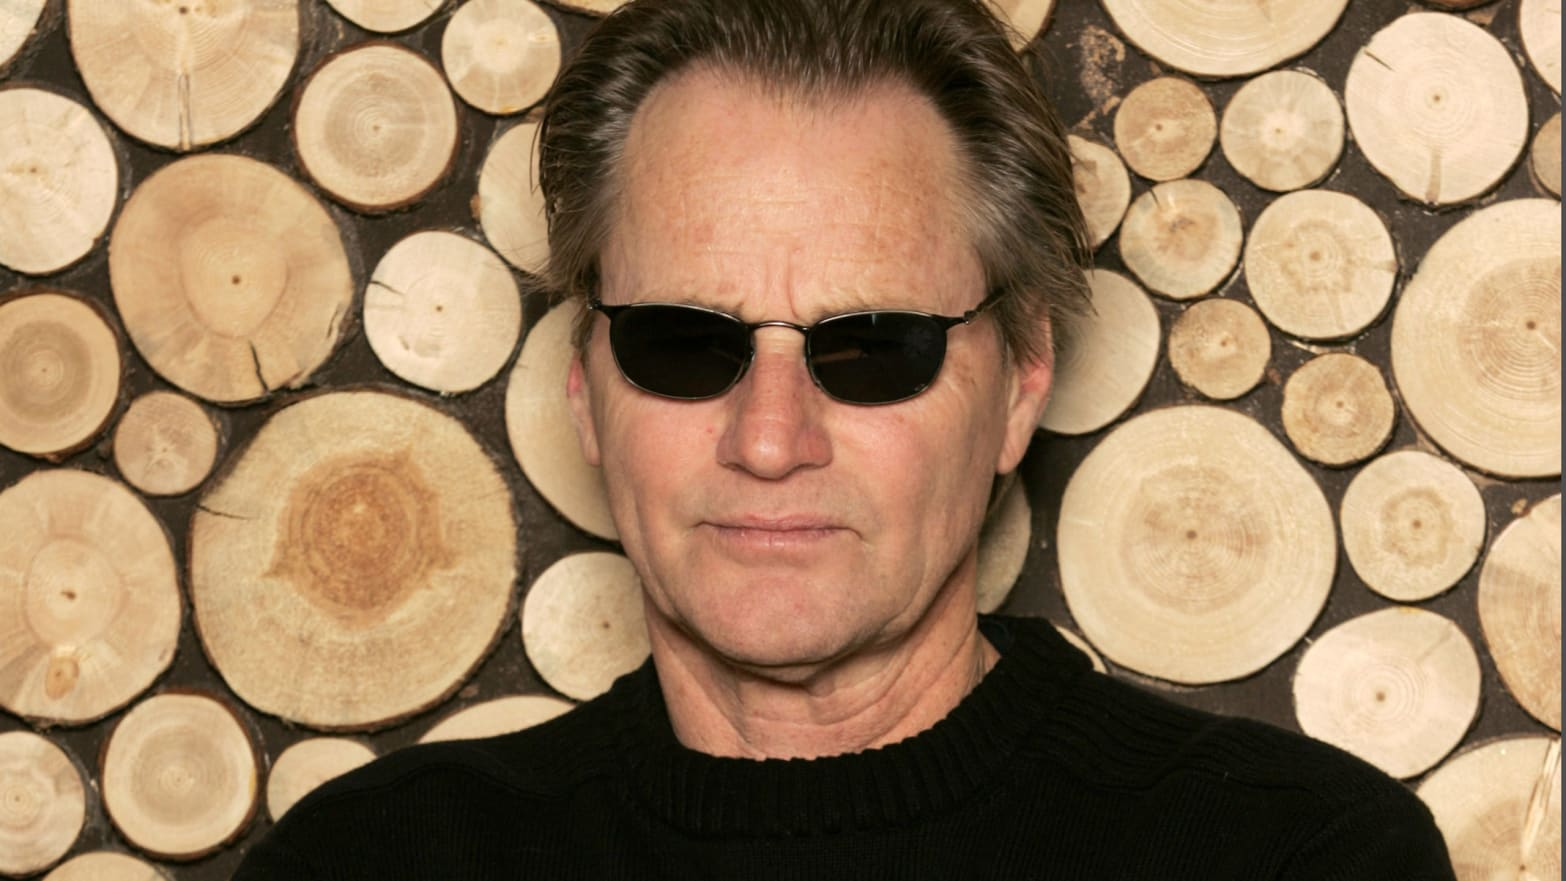 Sam Shepard on Drinking, Death, and 'Fist Fights with Marines'